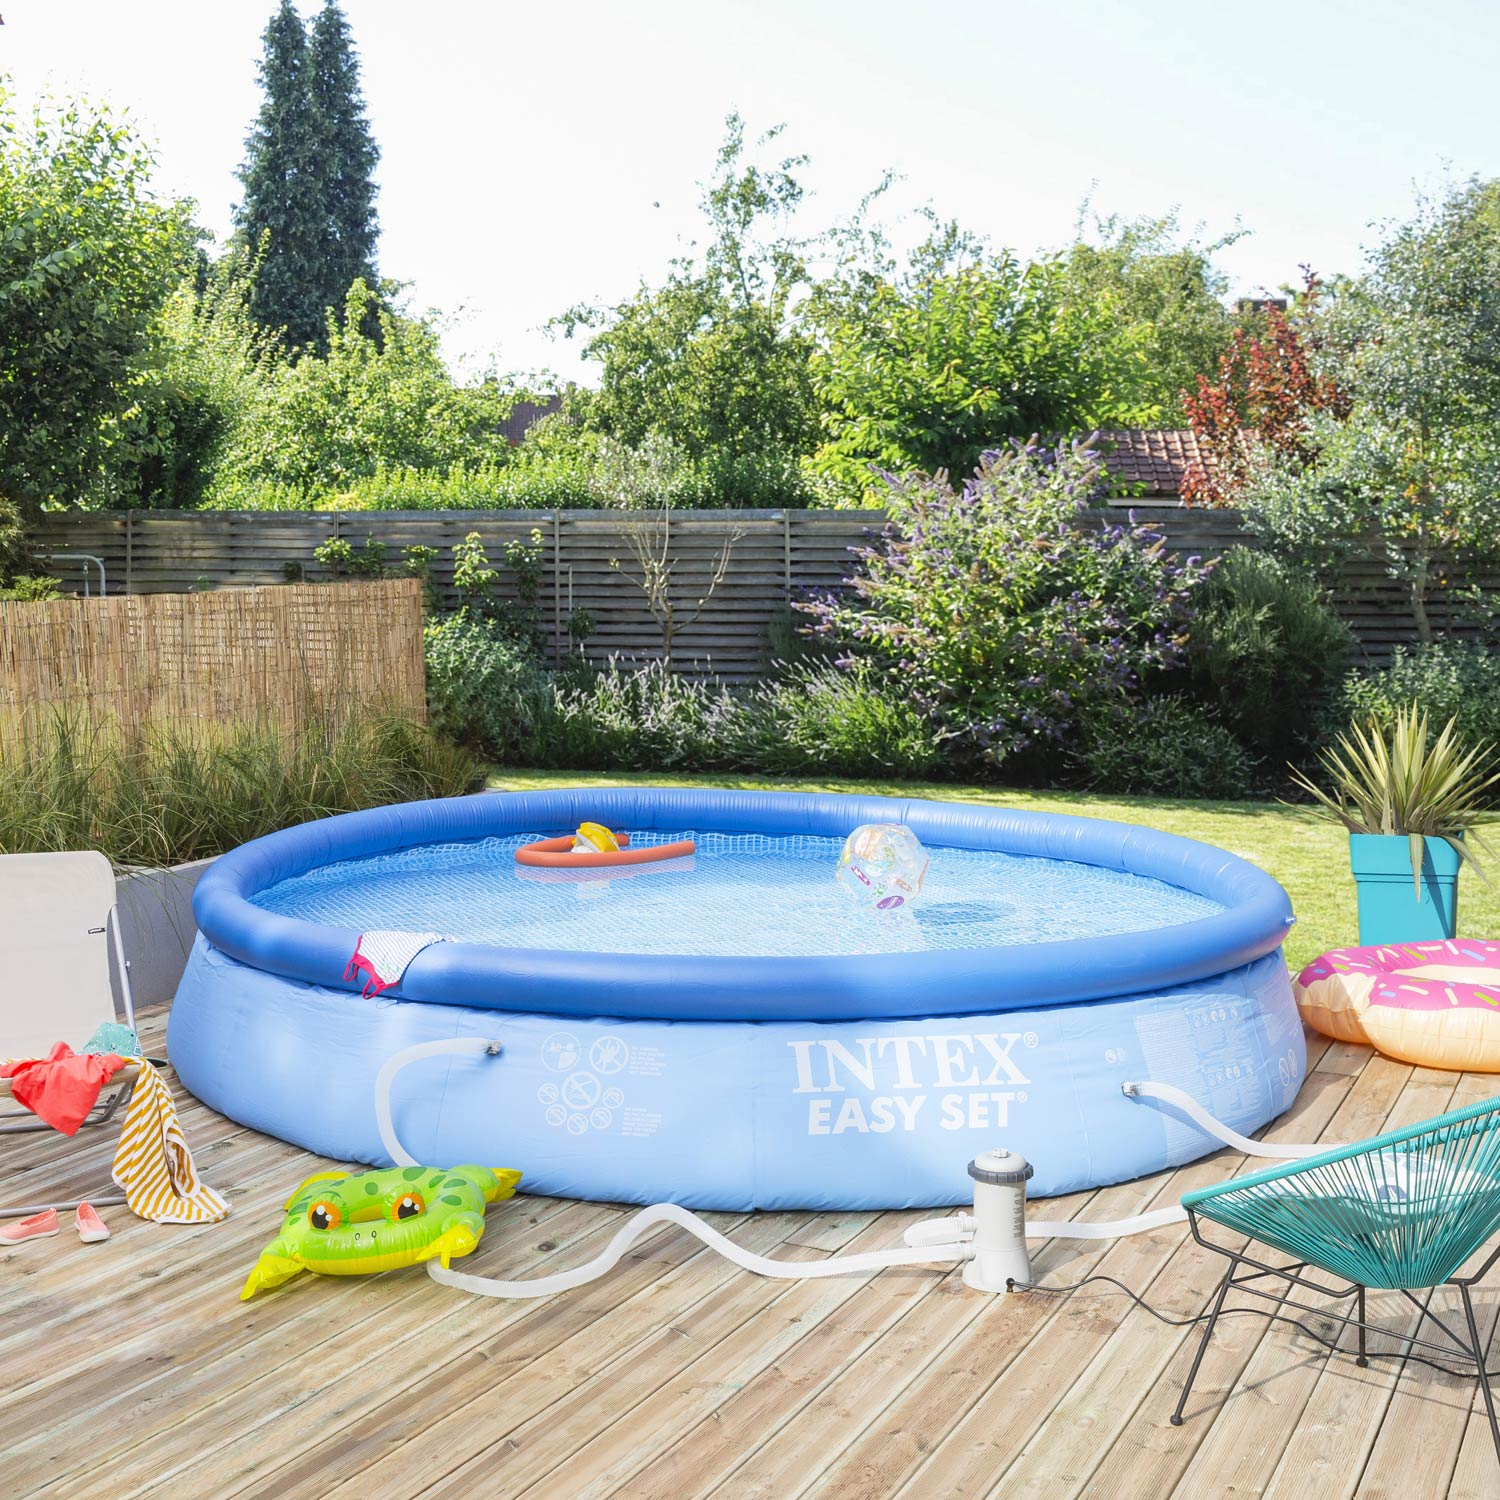 Piscine hors sol autoportante gonflable easy set intex for Plateforme piscine hors sol